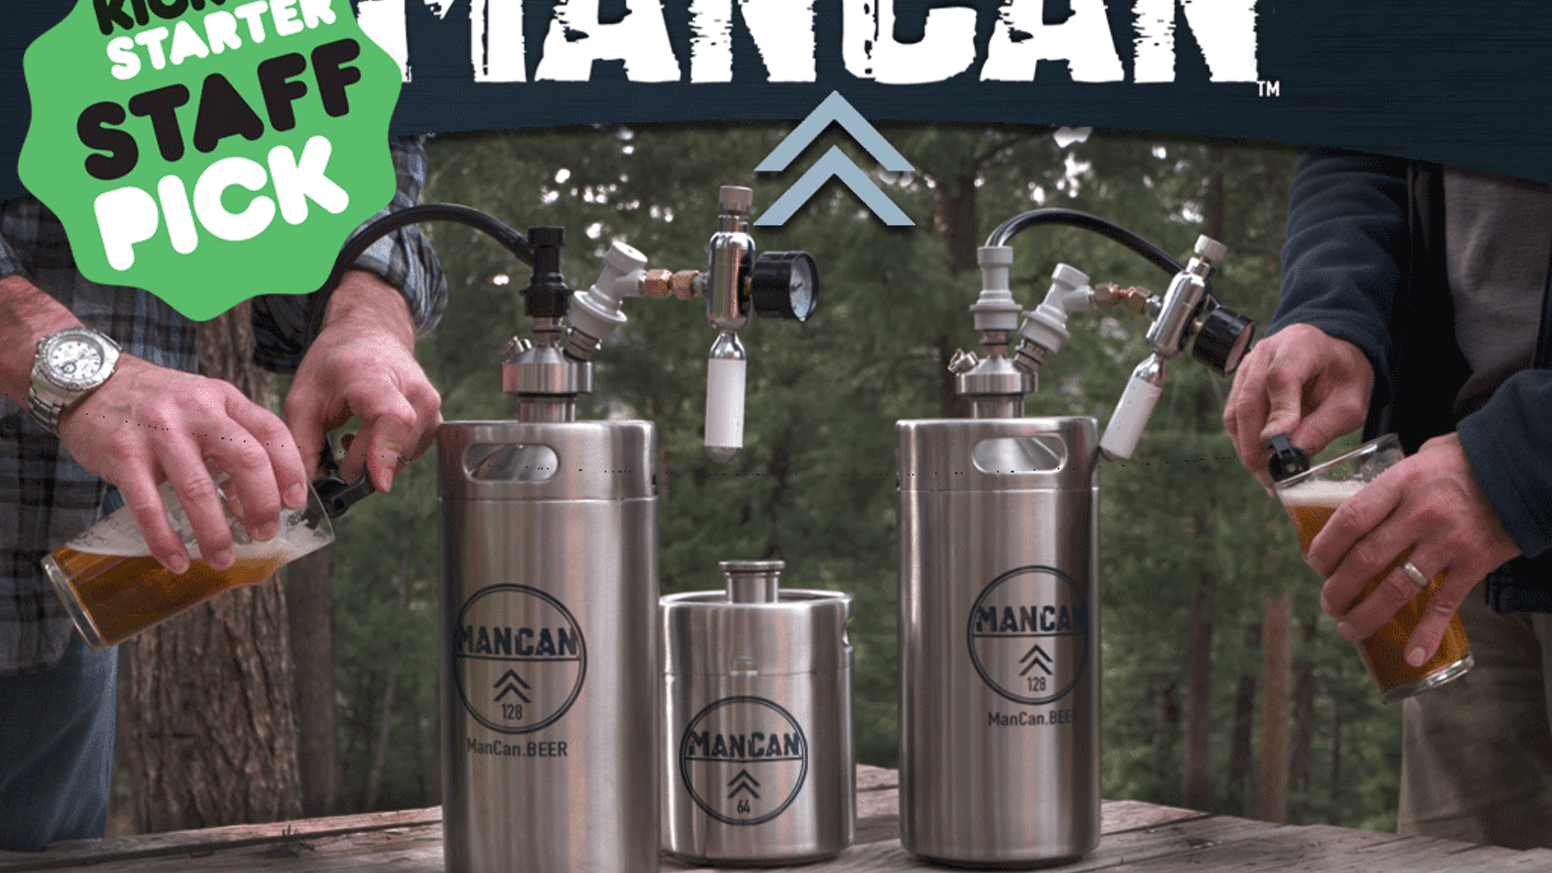 ManCan is now located at the URL below. For current information and to contact us, please visit the site.